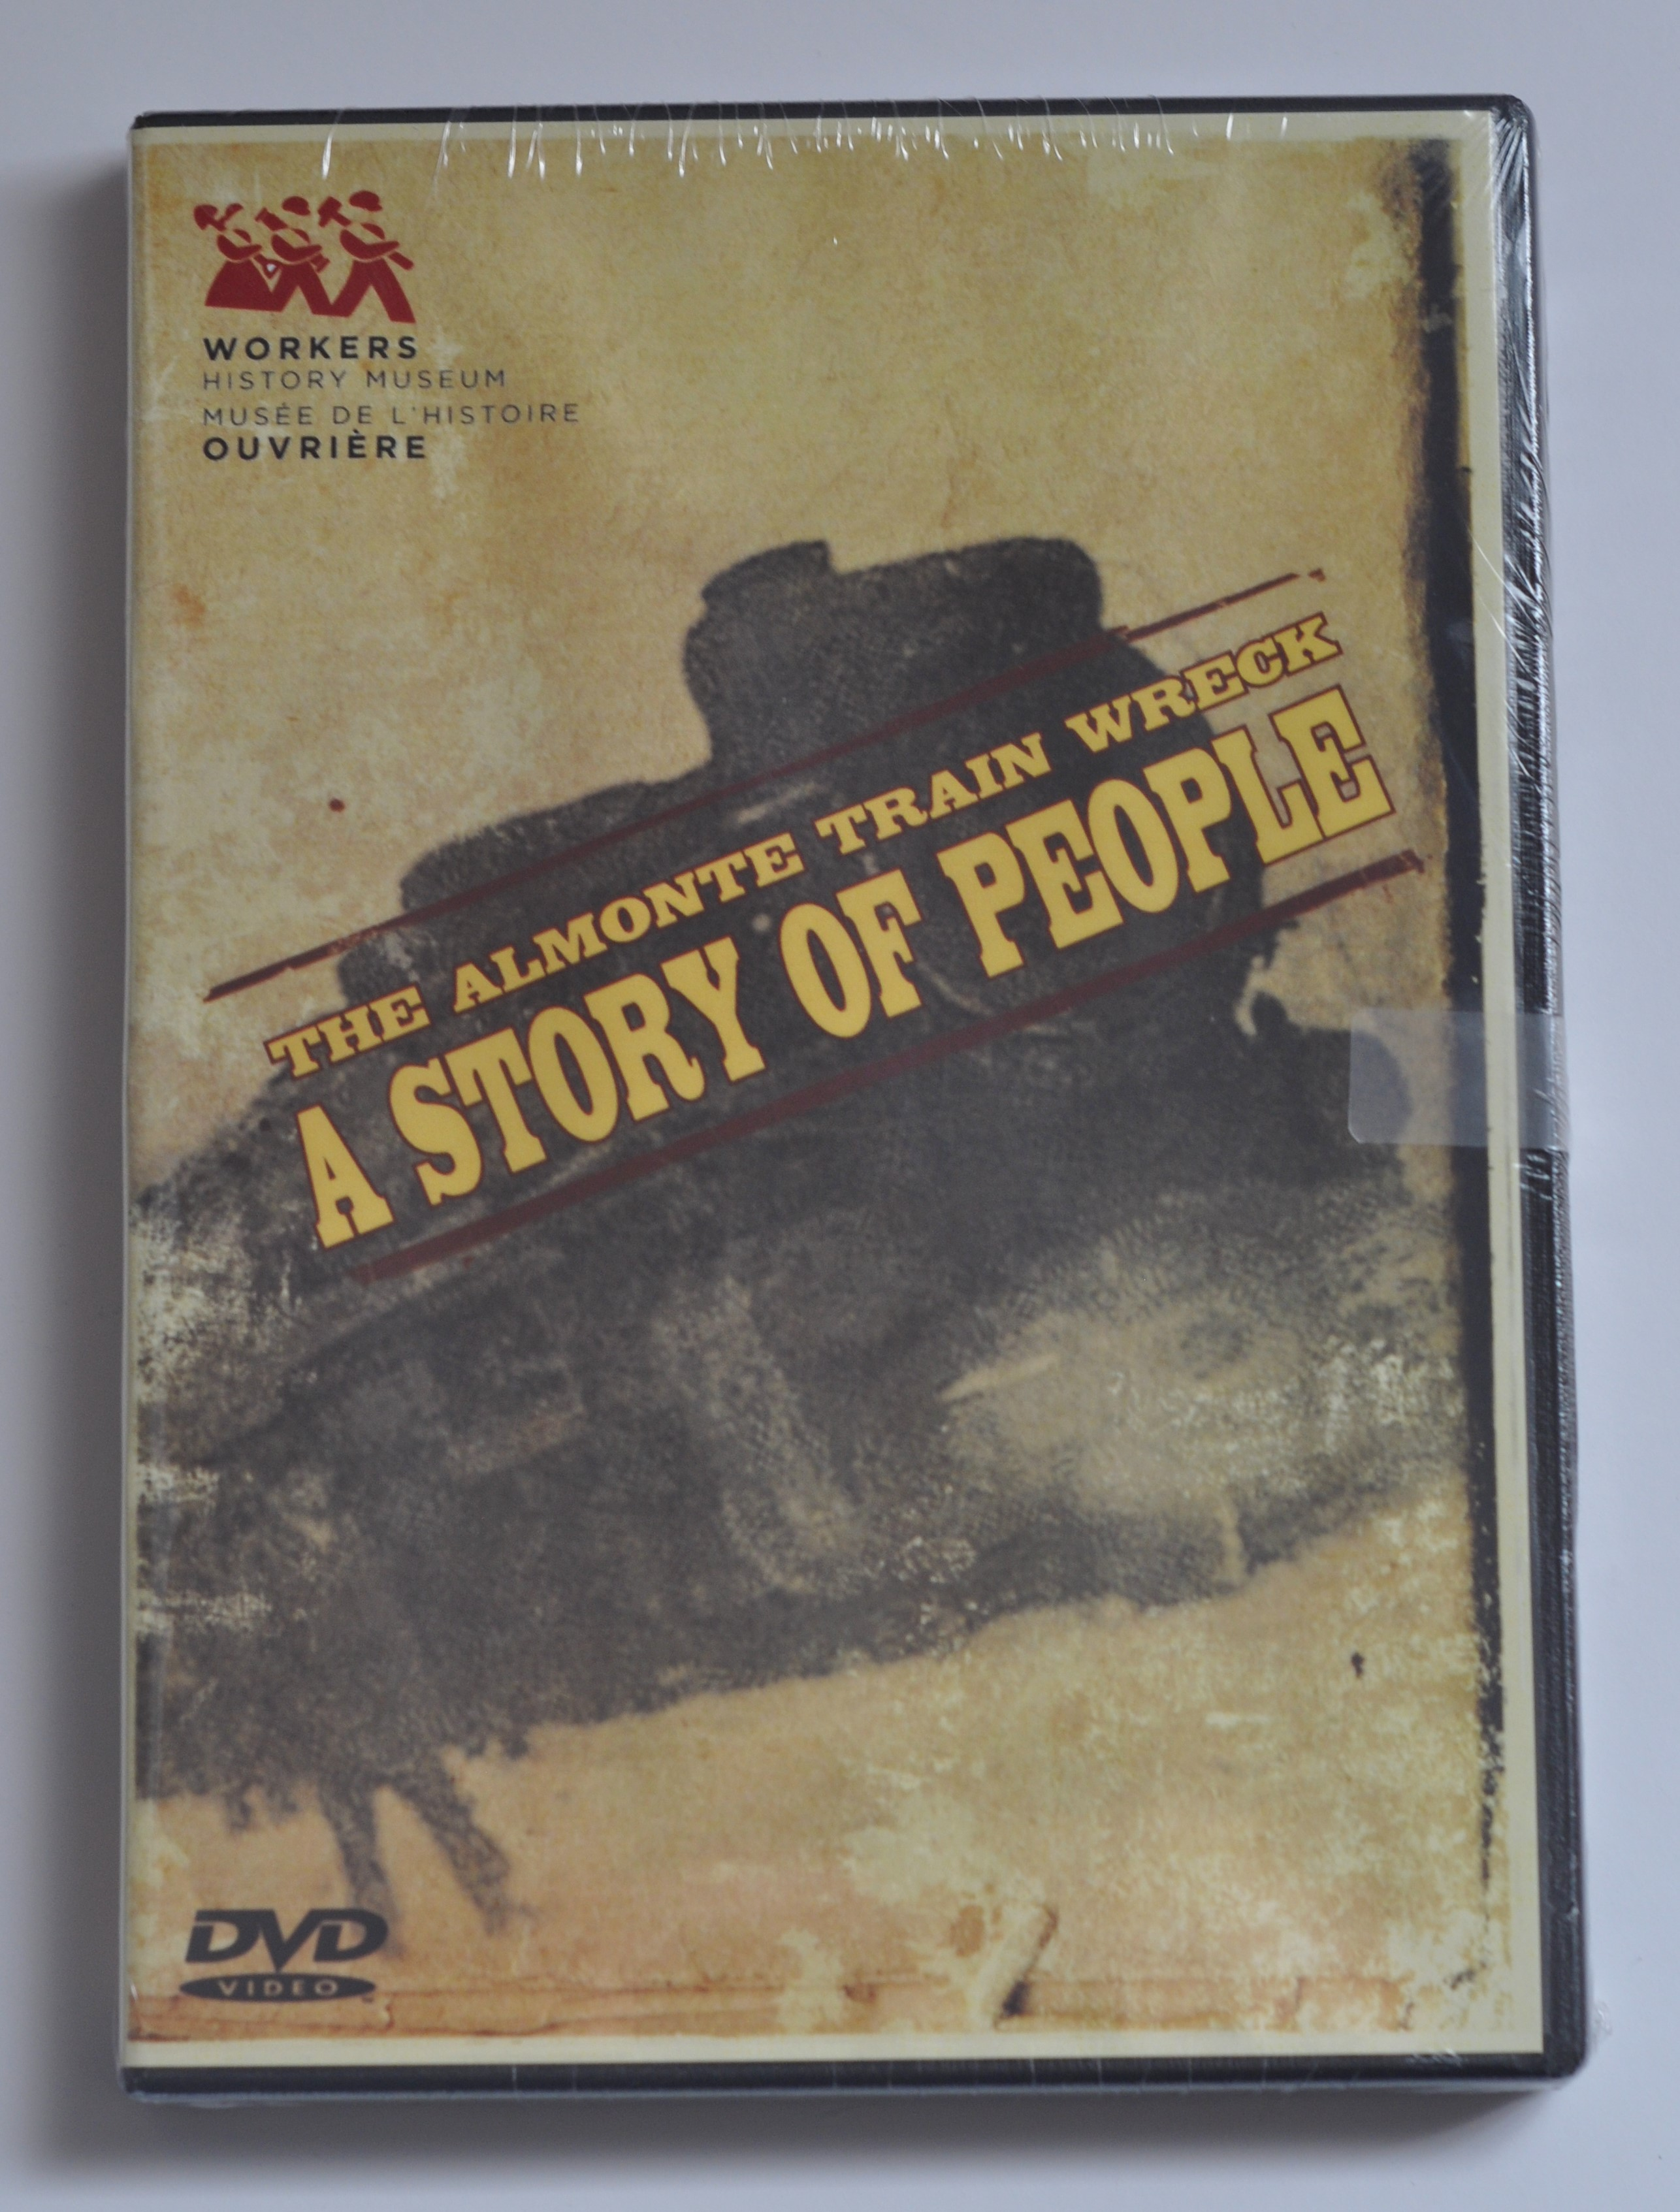 The Almonte Train Wreck, A Story of People DVD